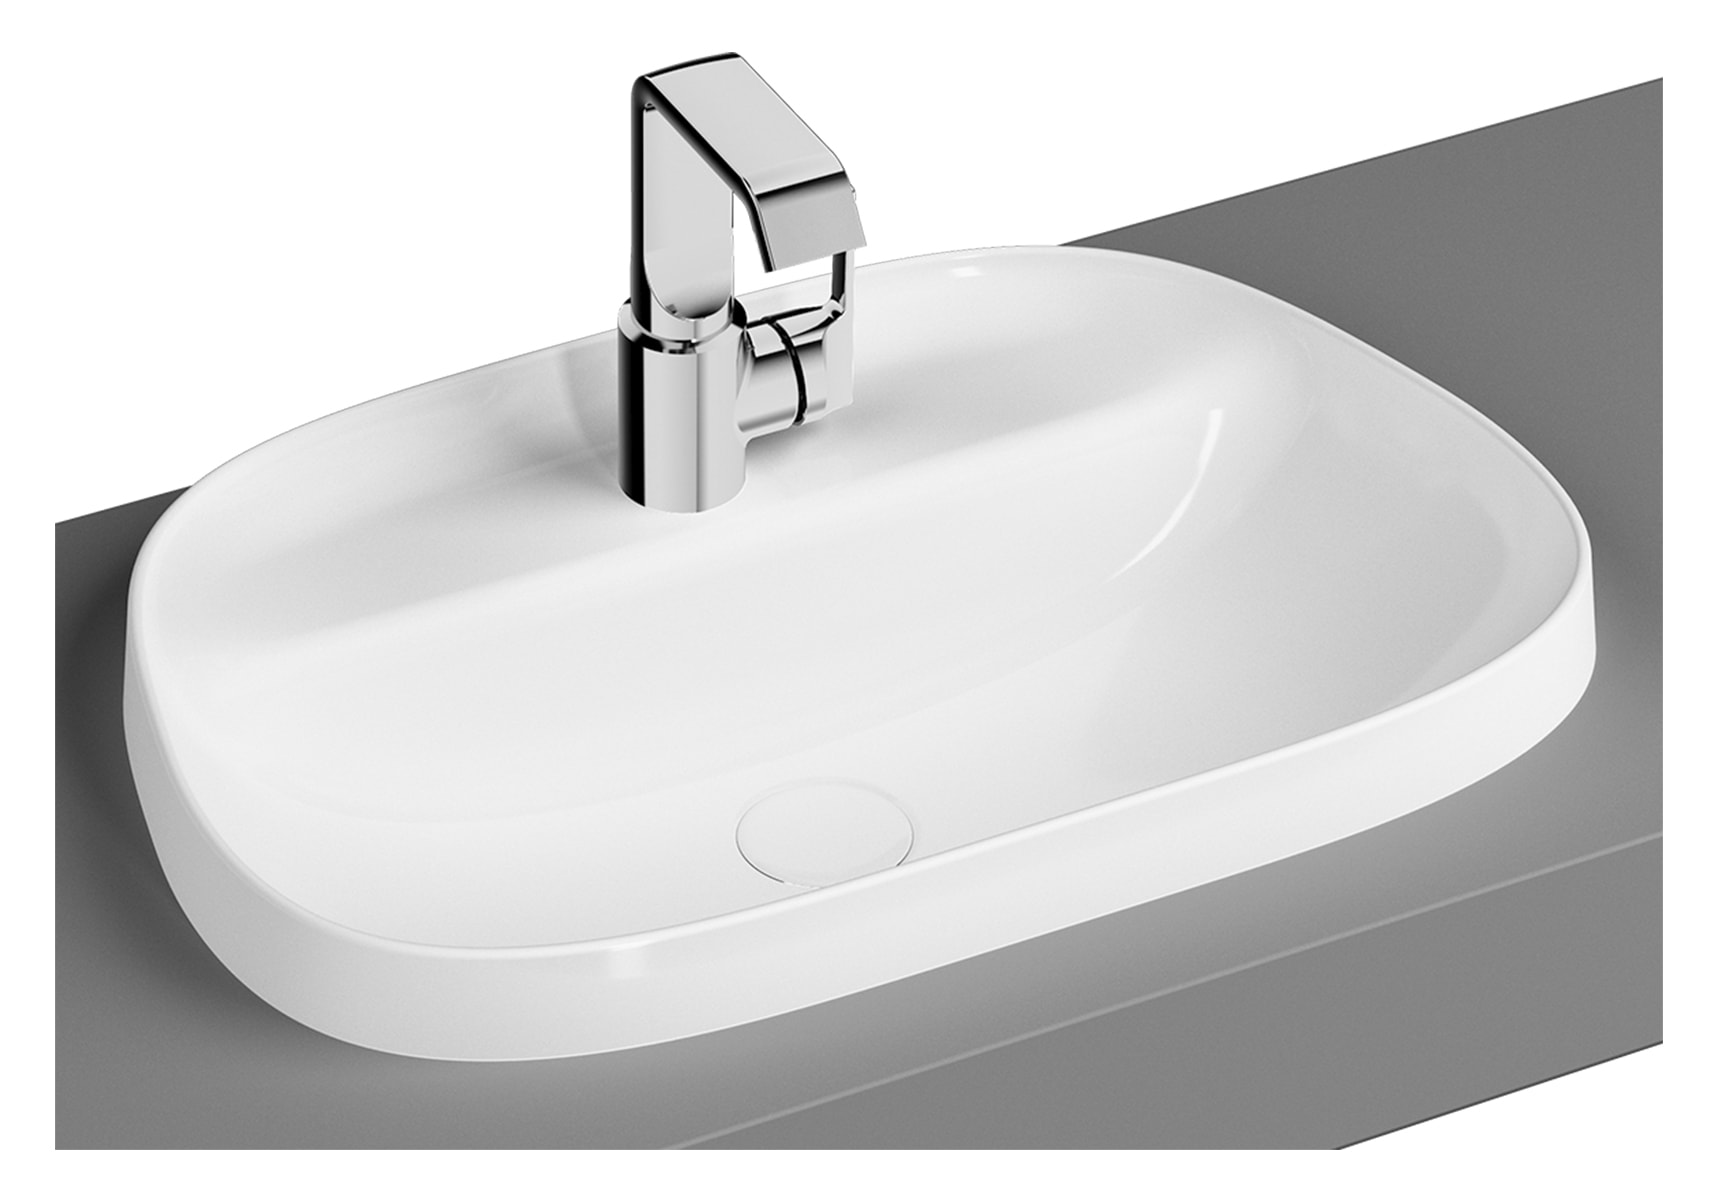 Tv Shaped Countertop Basin, 57cm, One Tap Hole, Without Overflow Hole